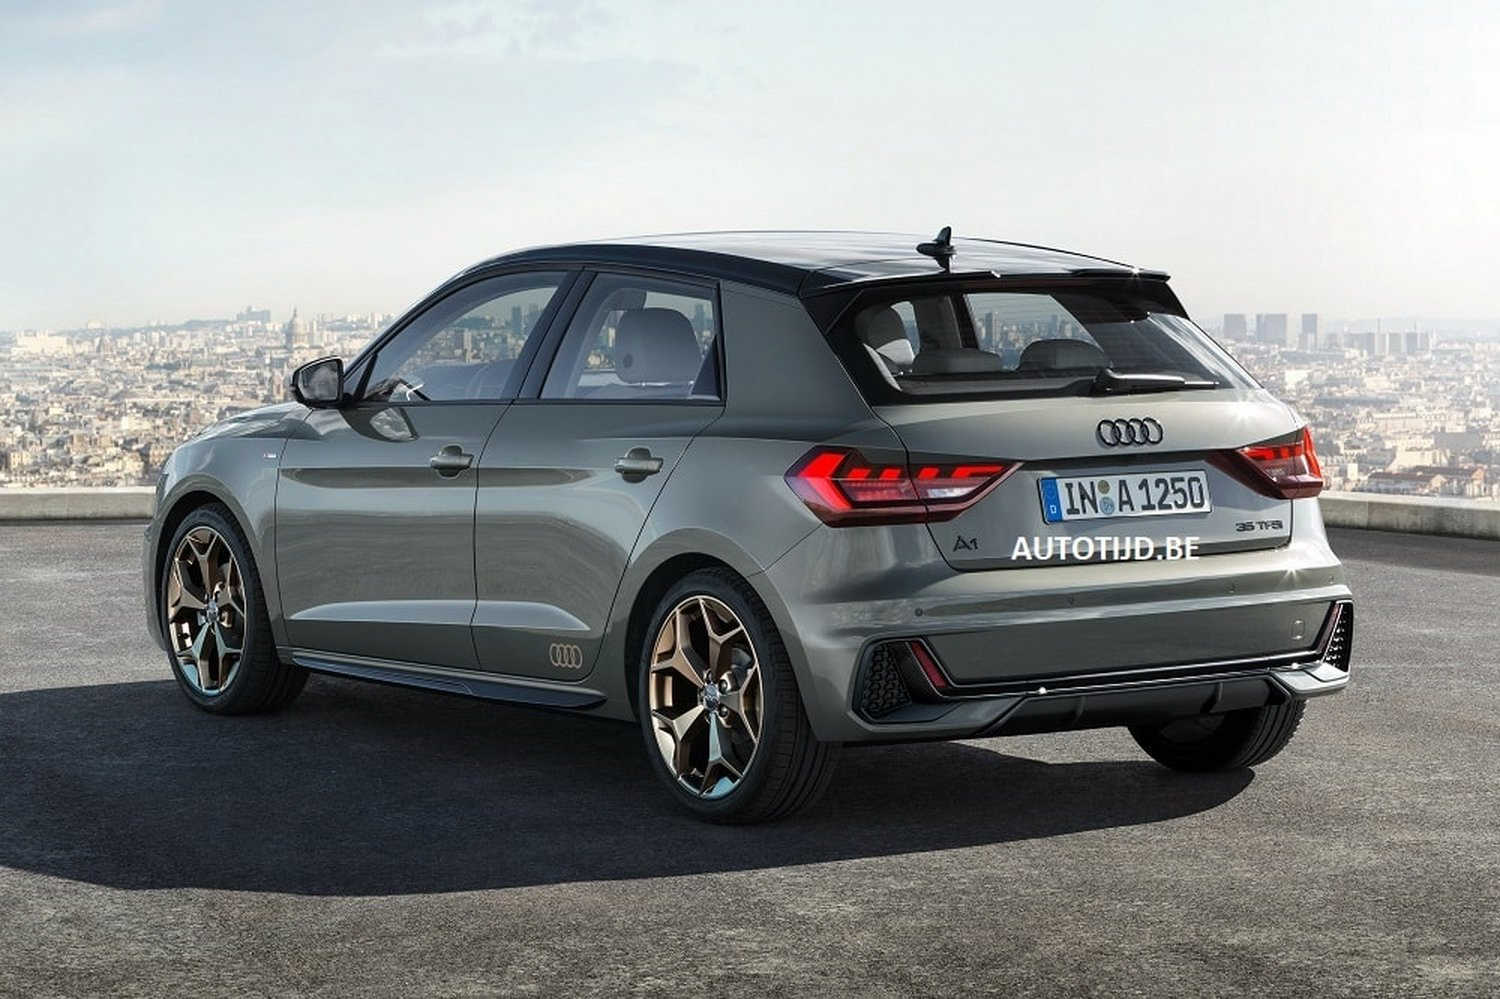 2019 audi a1 leaked official photos reveal sporty design